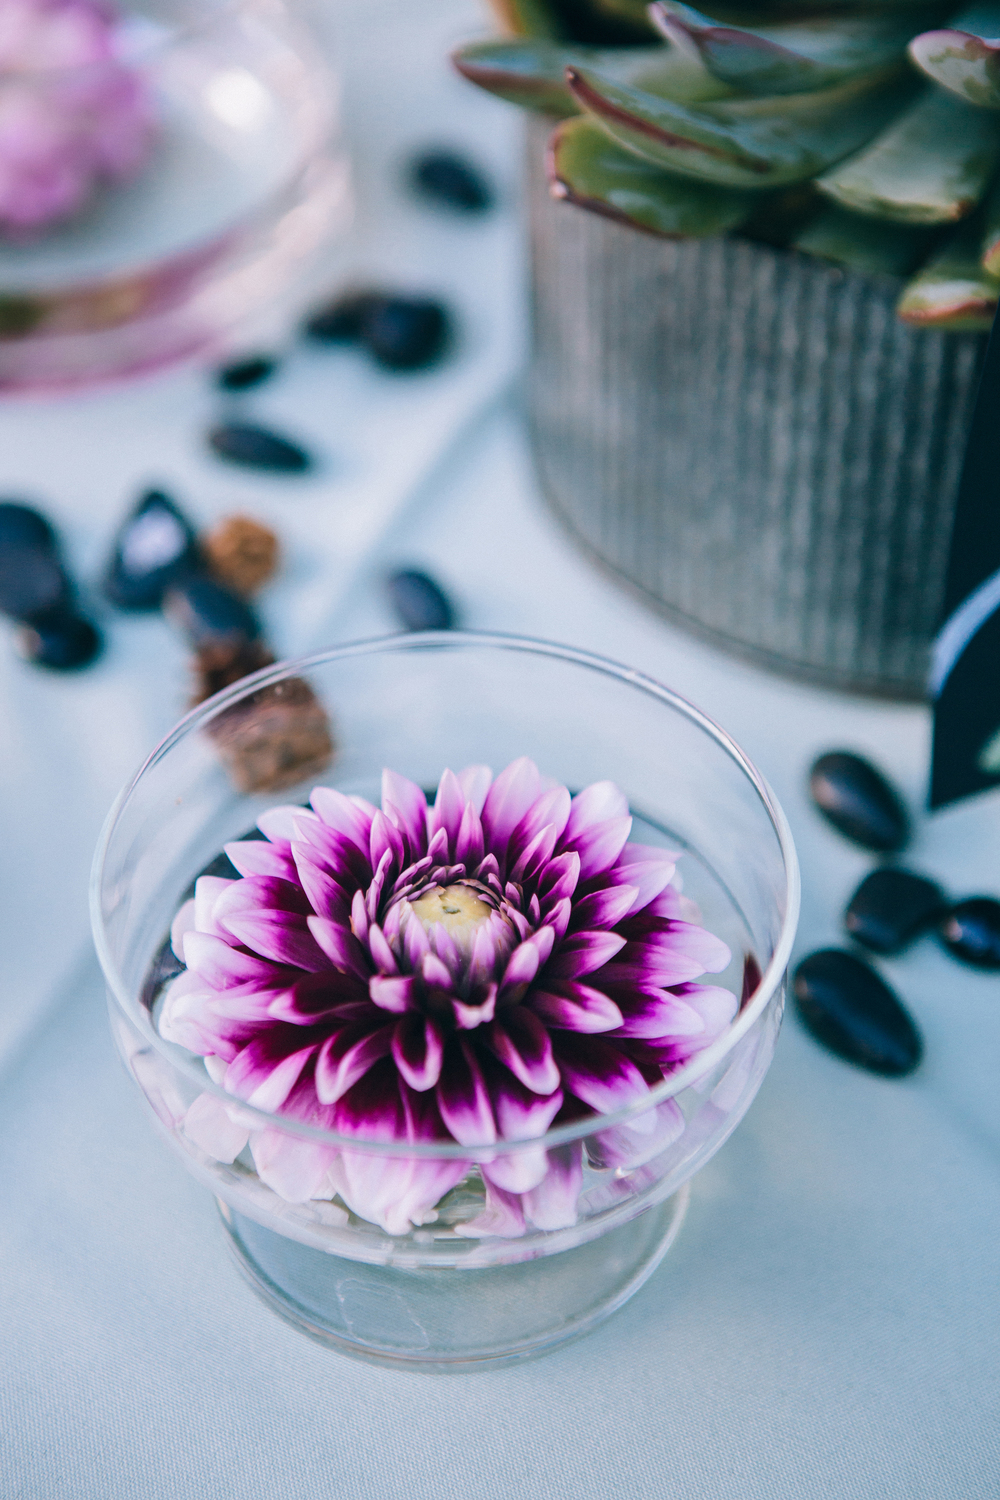 I really wished I could have combined flowers with the succulents. But these dahlias would have had a total meltdown before the guests arrived to the reception. The only way I could use them was to decapitate the blooms and float them in clear bowls of water.